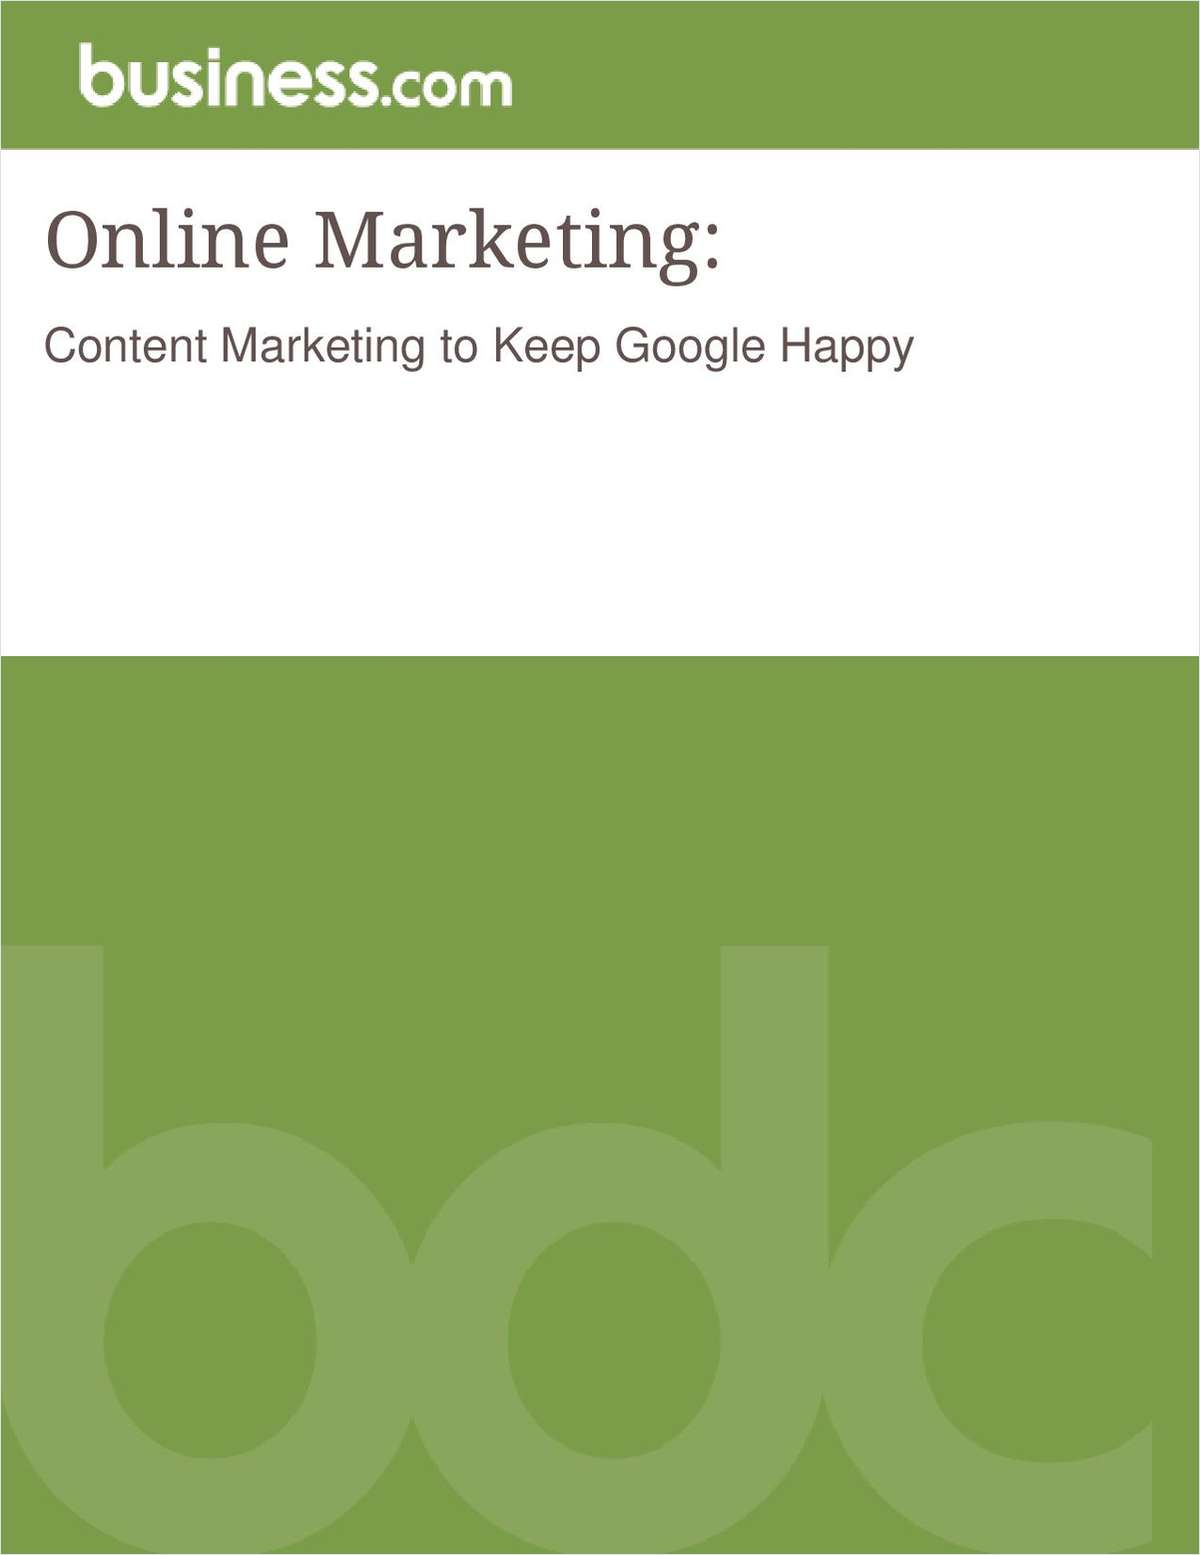 Online Marketing:  Content Marketing to Keep Google Happy